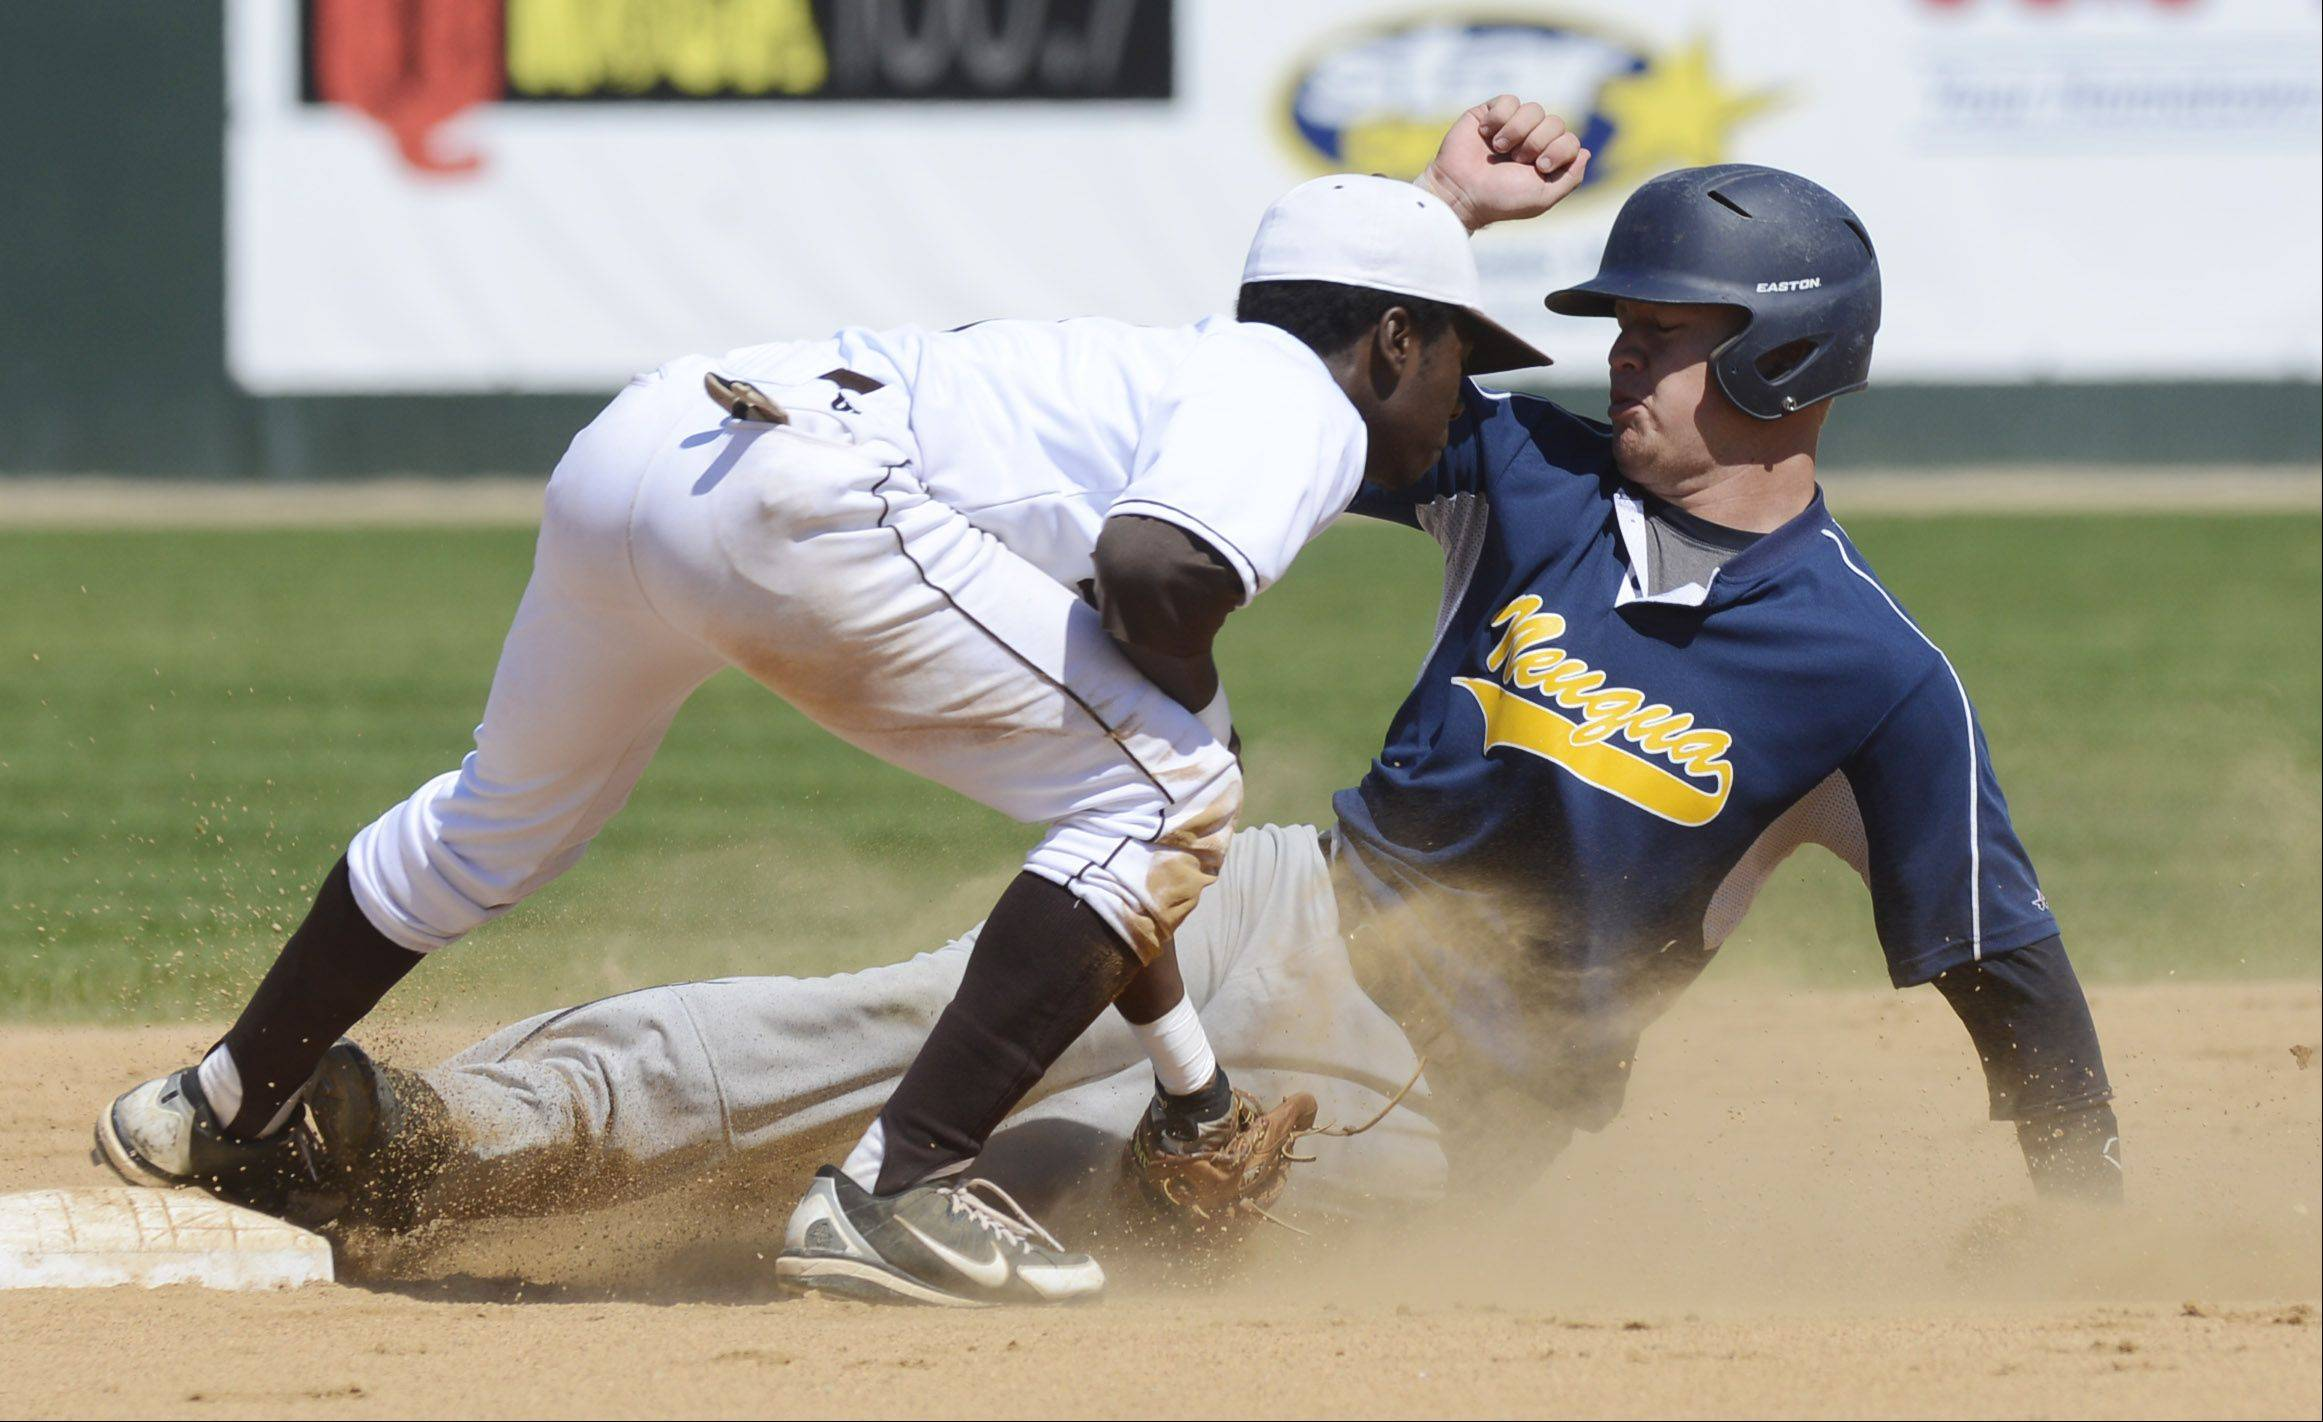 Neuqua Valley's Dylan Goss gets tagged out at second by Mt. Carmel's Jason Gasser on a first-inning steal attempt.